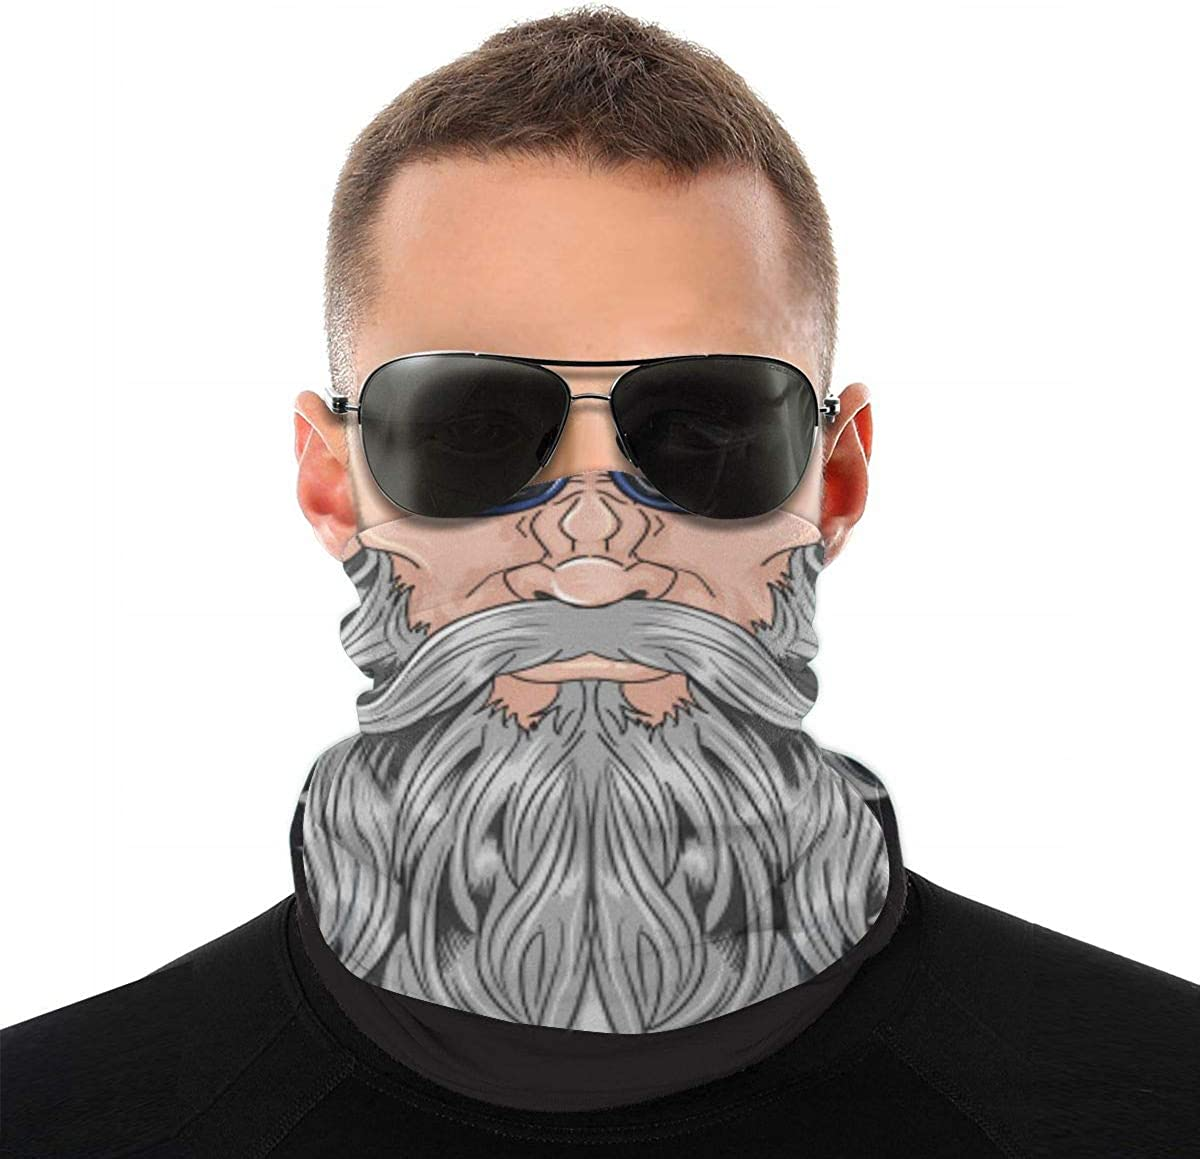 When I Shaved My Beard-Nobody Know Me Neck Ear Face Mask Light Breathable Neck Gaiter Windproof Bandanas For Men Women Teens Outdoor All Season